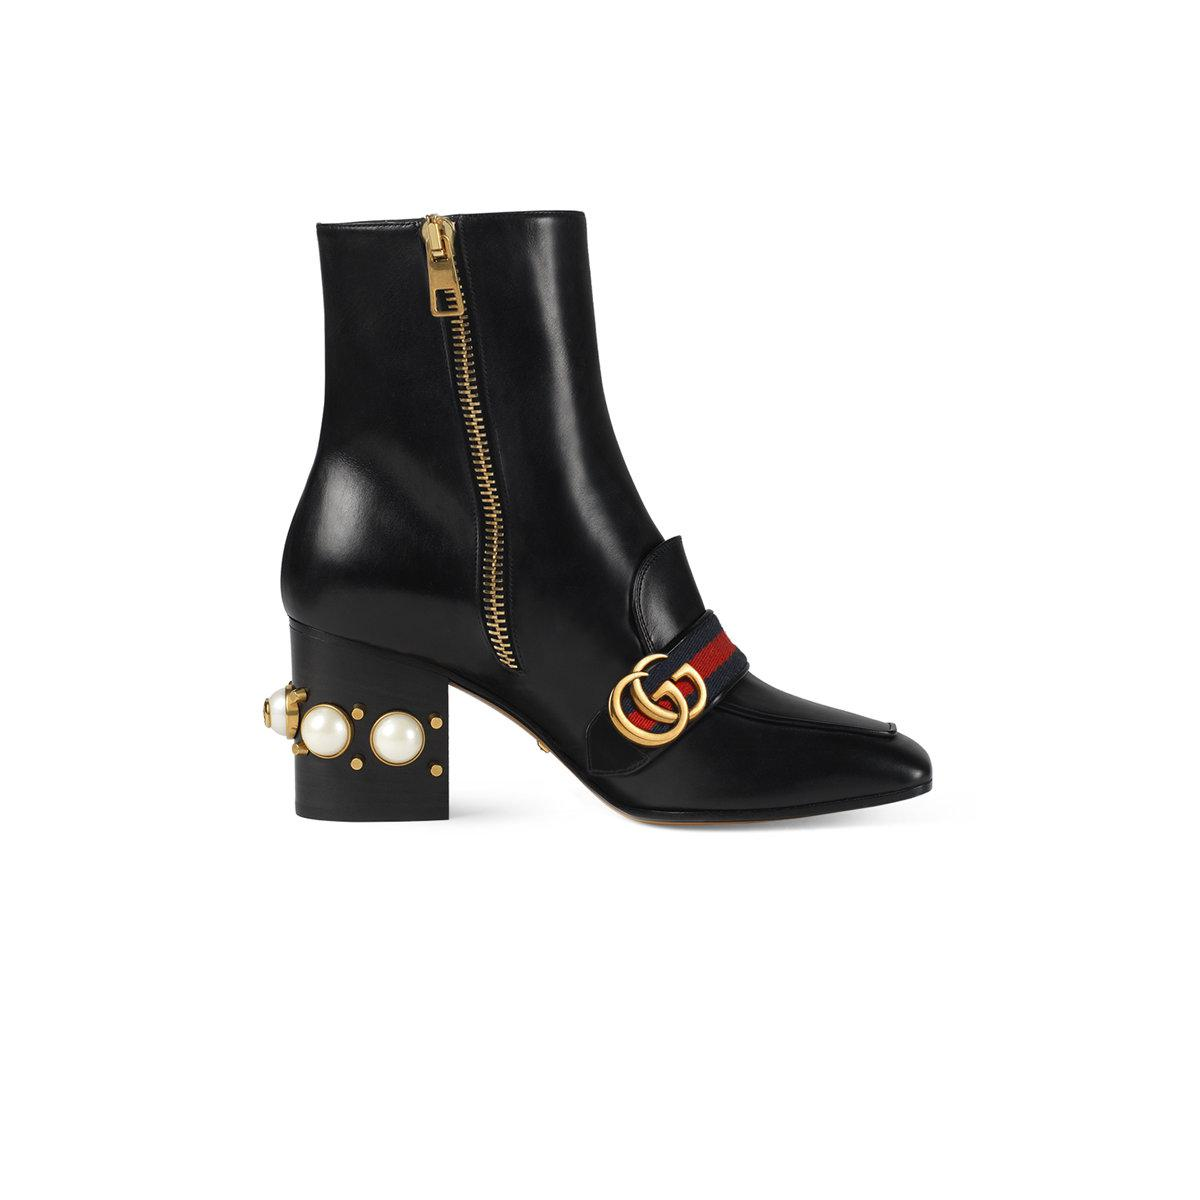 47508ebfc39 Lyst - Gucci Leather Mid-heel Ankle Boot in Black